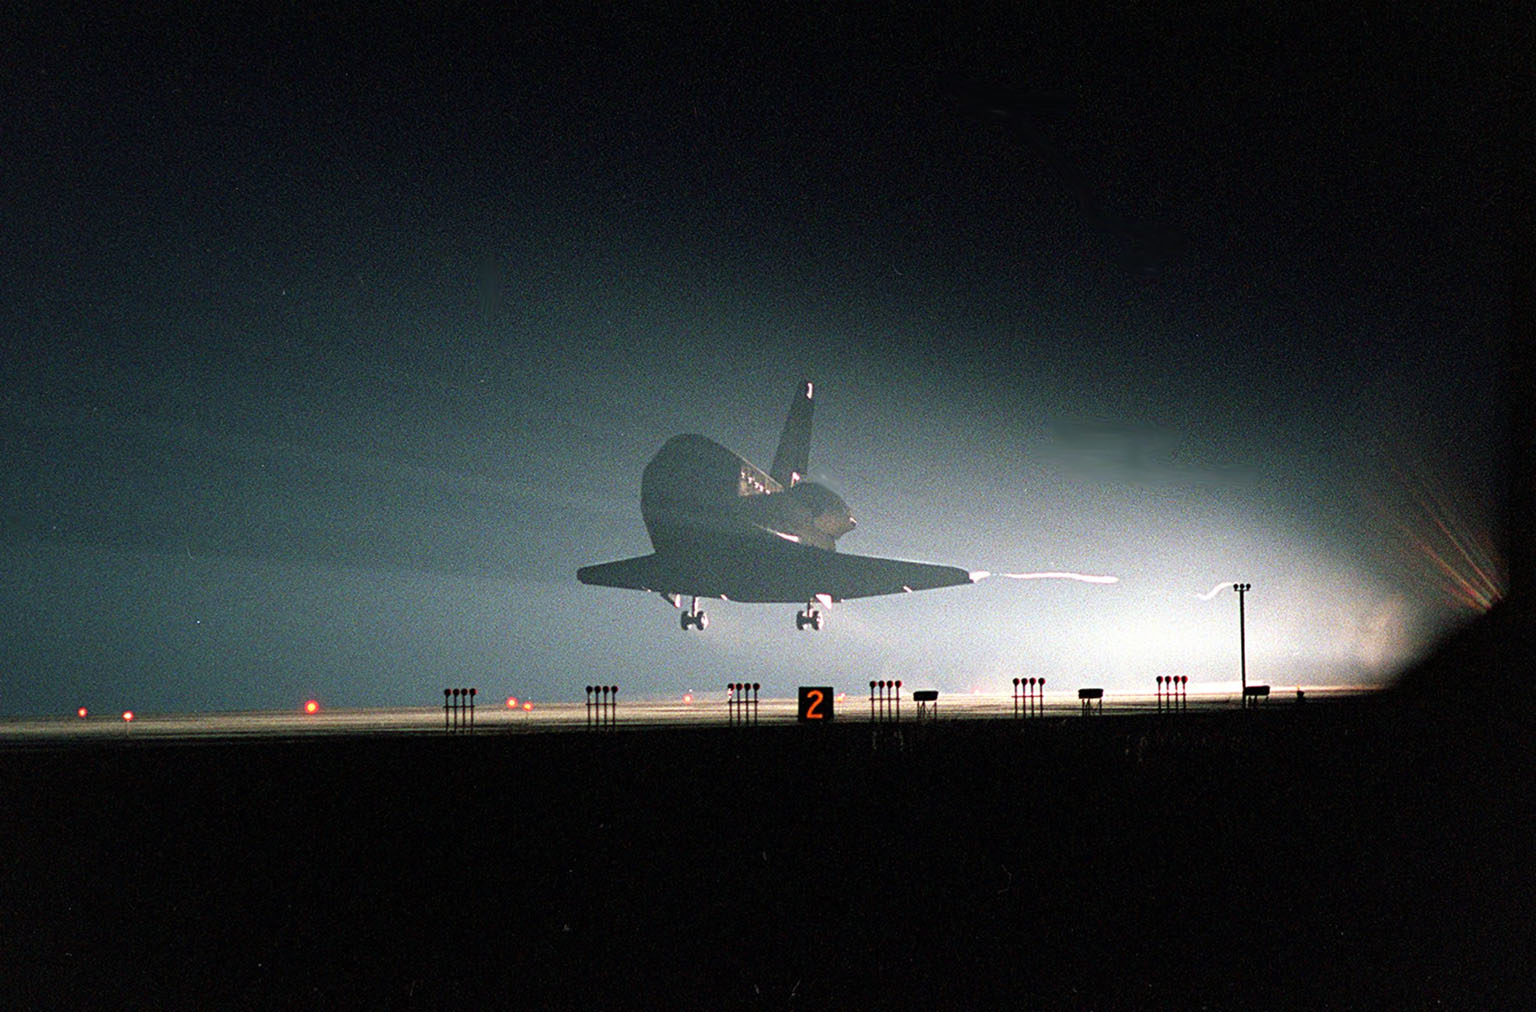 KENNEDY SPACE CENTER, Fla. -- At KSC?s Shuttle Landing Facility, the lights on Runway 15 reveal Space Shuttle Atlantis as it nears touchdown, completing the 9-day, 20-hour, 9-minute-long STS-101 mission. At the controls are Commander James D. Halsell Jr. and Pilot Scott ?Doc? Horowitz. Also onboard the orbiter are Mission Specialists Mary Ellen Weber, James S. Voss, Jeffrey N. Williams, Susan J. Helms and Yury Usachev of Russia. The crew is returning from the third flight to the International Space Station. This was the 98th flight in the Space Shuttle program and the 21st for Atlantis, also marking the 51st landing at KSC, the 22nd consecutive landing at KSC, the 14th nighttime landing in Shuttle history and the 29th in the last 30 Shuttle flights. Main gear touchdown was at 2:20:17 a.m. EDT May 29 , landing on orbit 155 of the mission. Nose gear touchdown was at 2:20:30 a.m. EDT, and wheel stop at 2:21:19 a.m. EDT